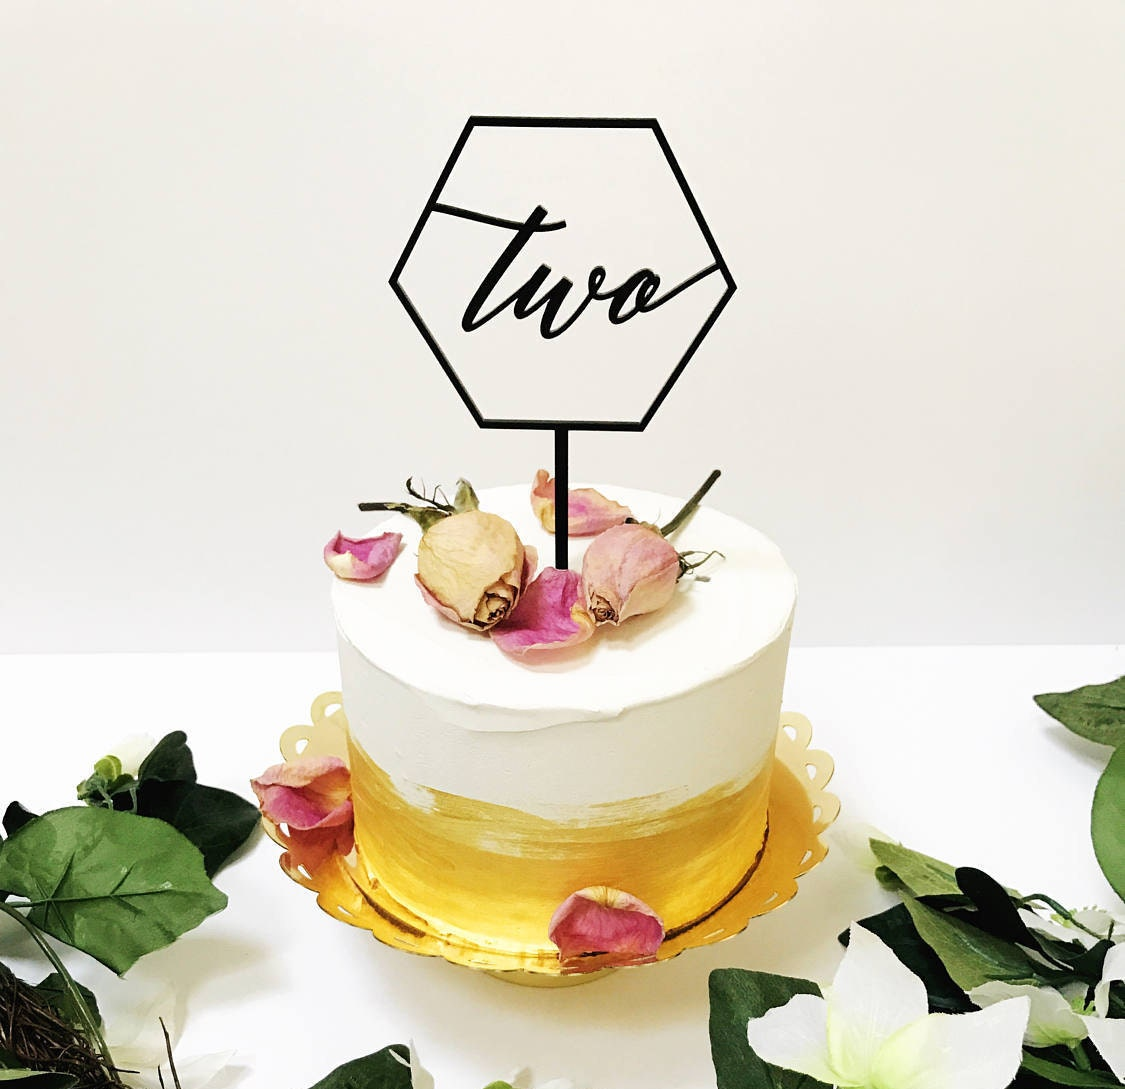 Hexagon Cake Toppernumber Toppergeometric Caketwo TopperBirthday TopperRustic Laser Cut ToppersAcrylic Topper1st Birthday